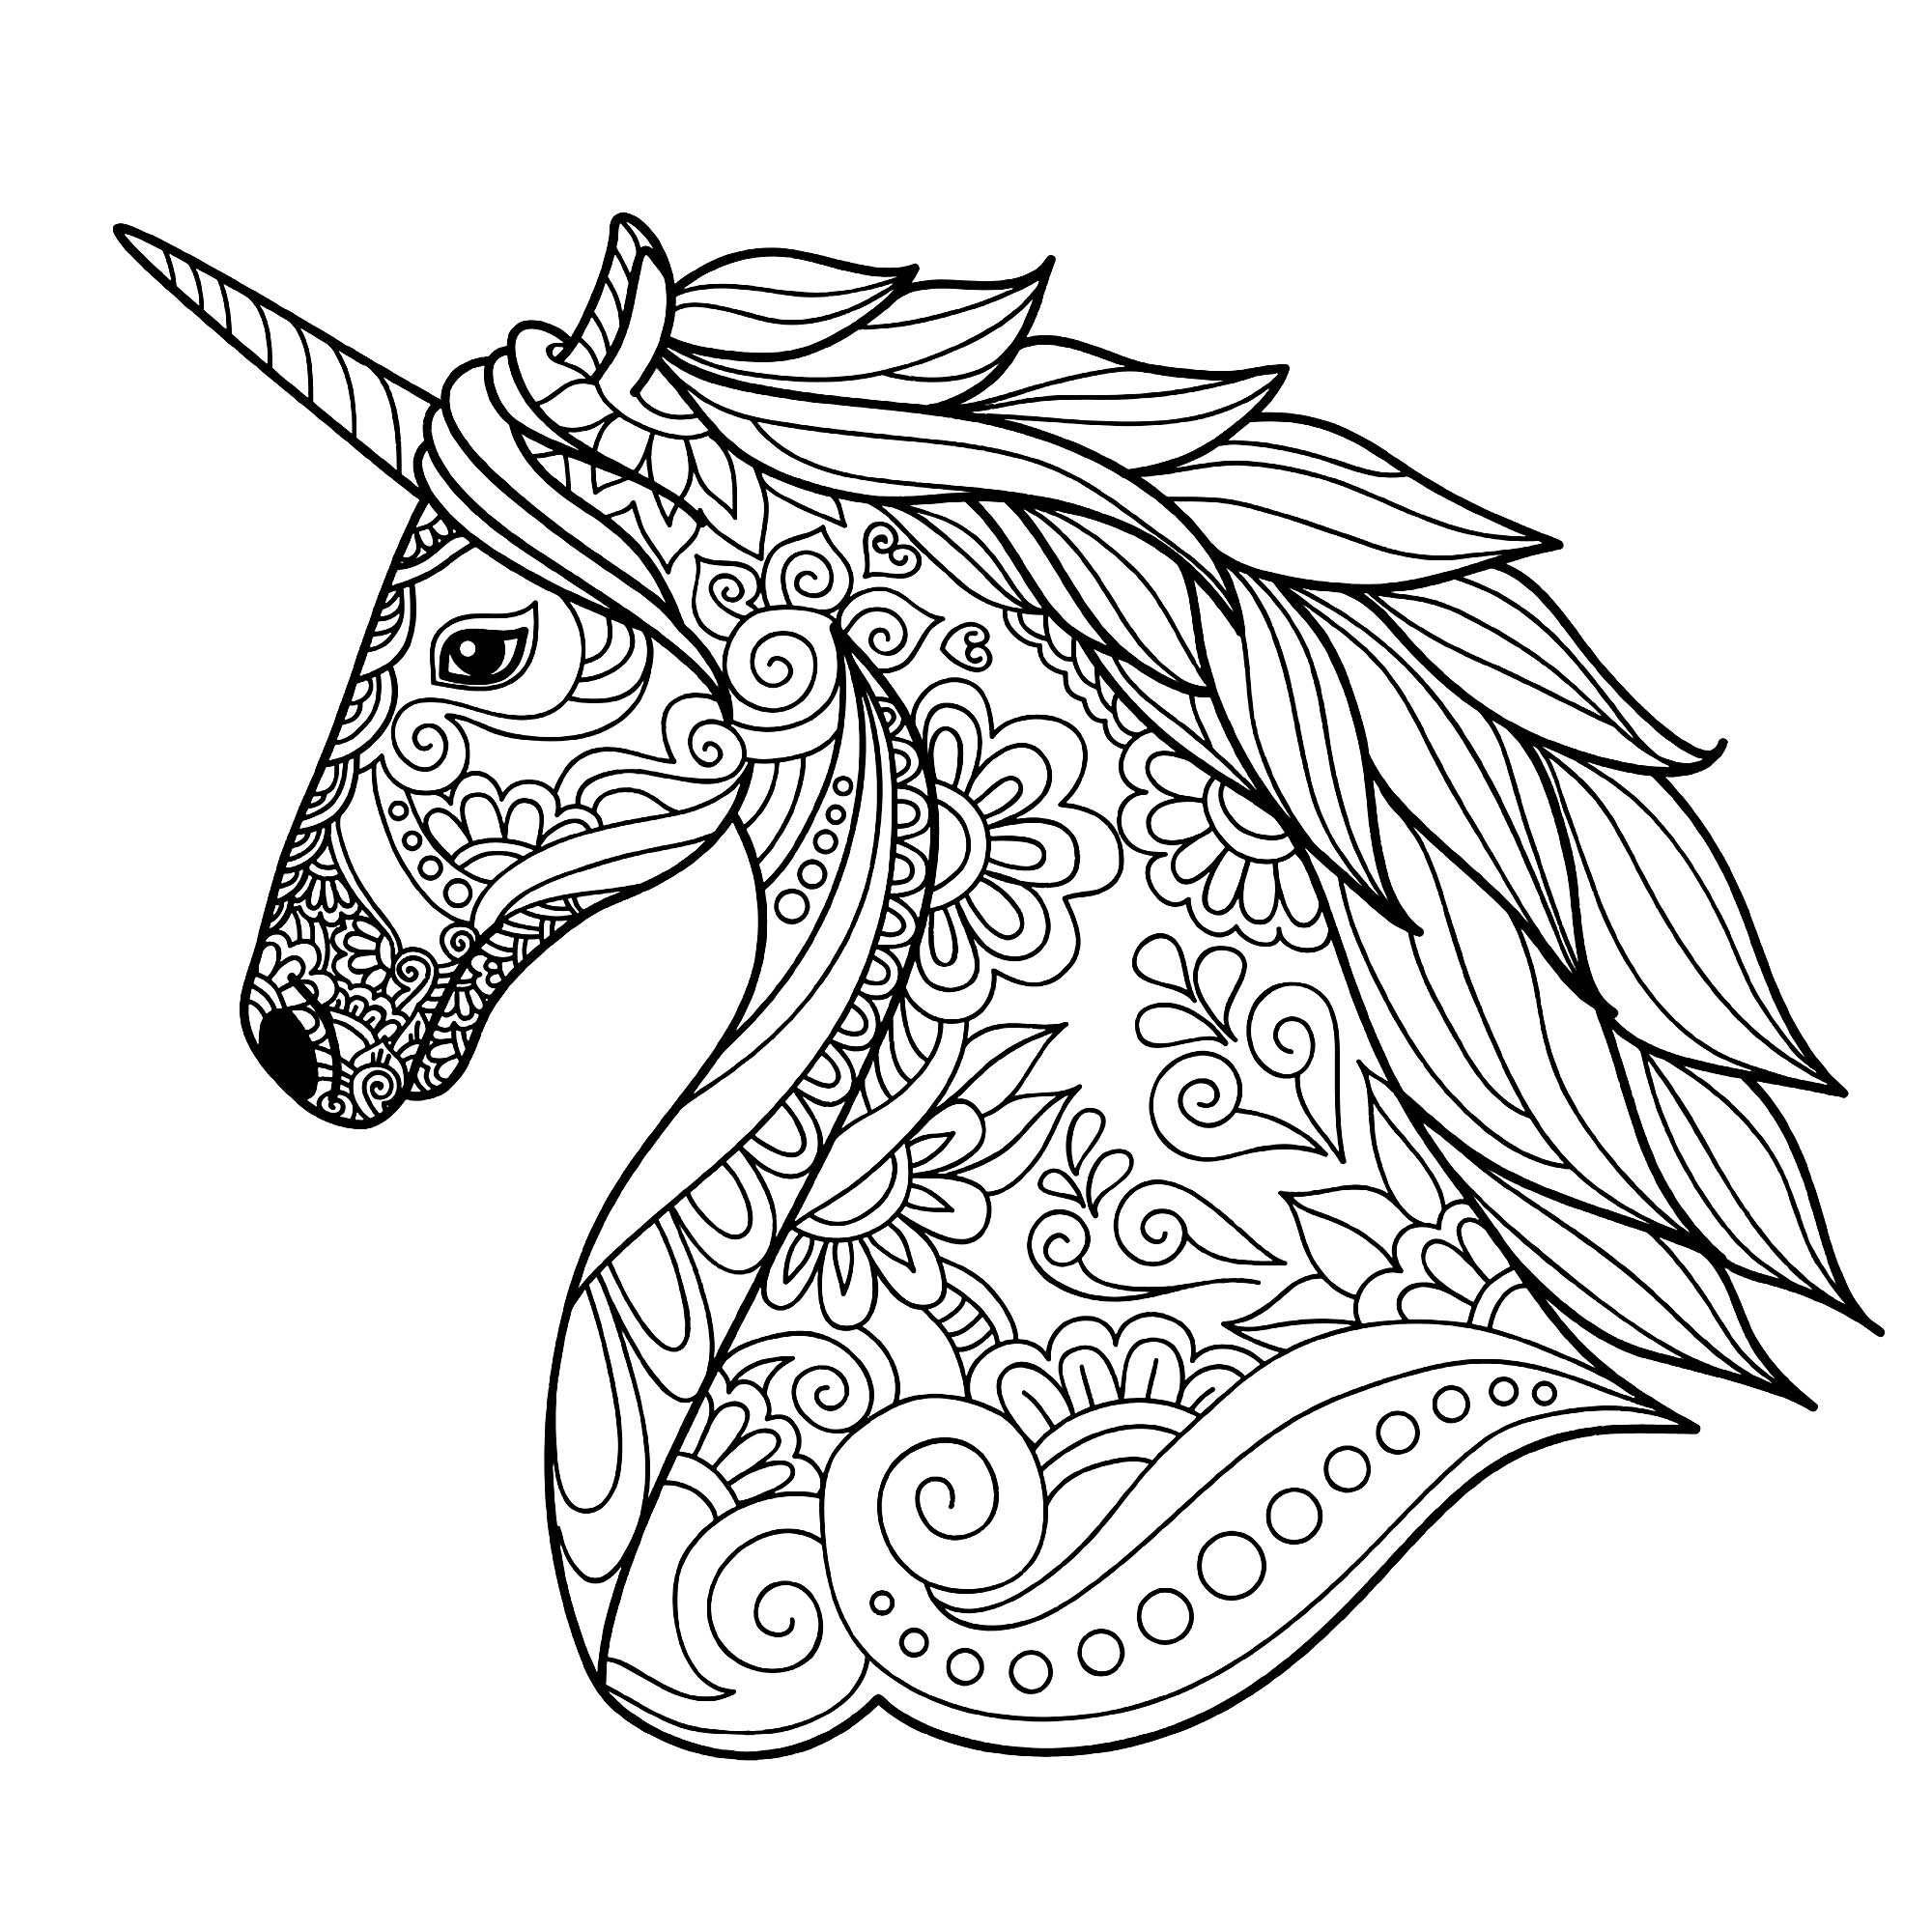 Unicorns free to color for children - Unicorns Kids Coloring Pages